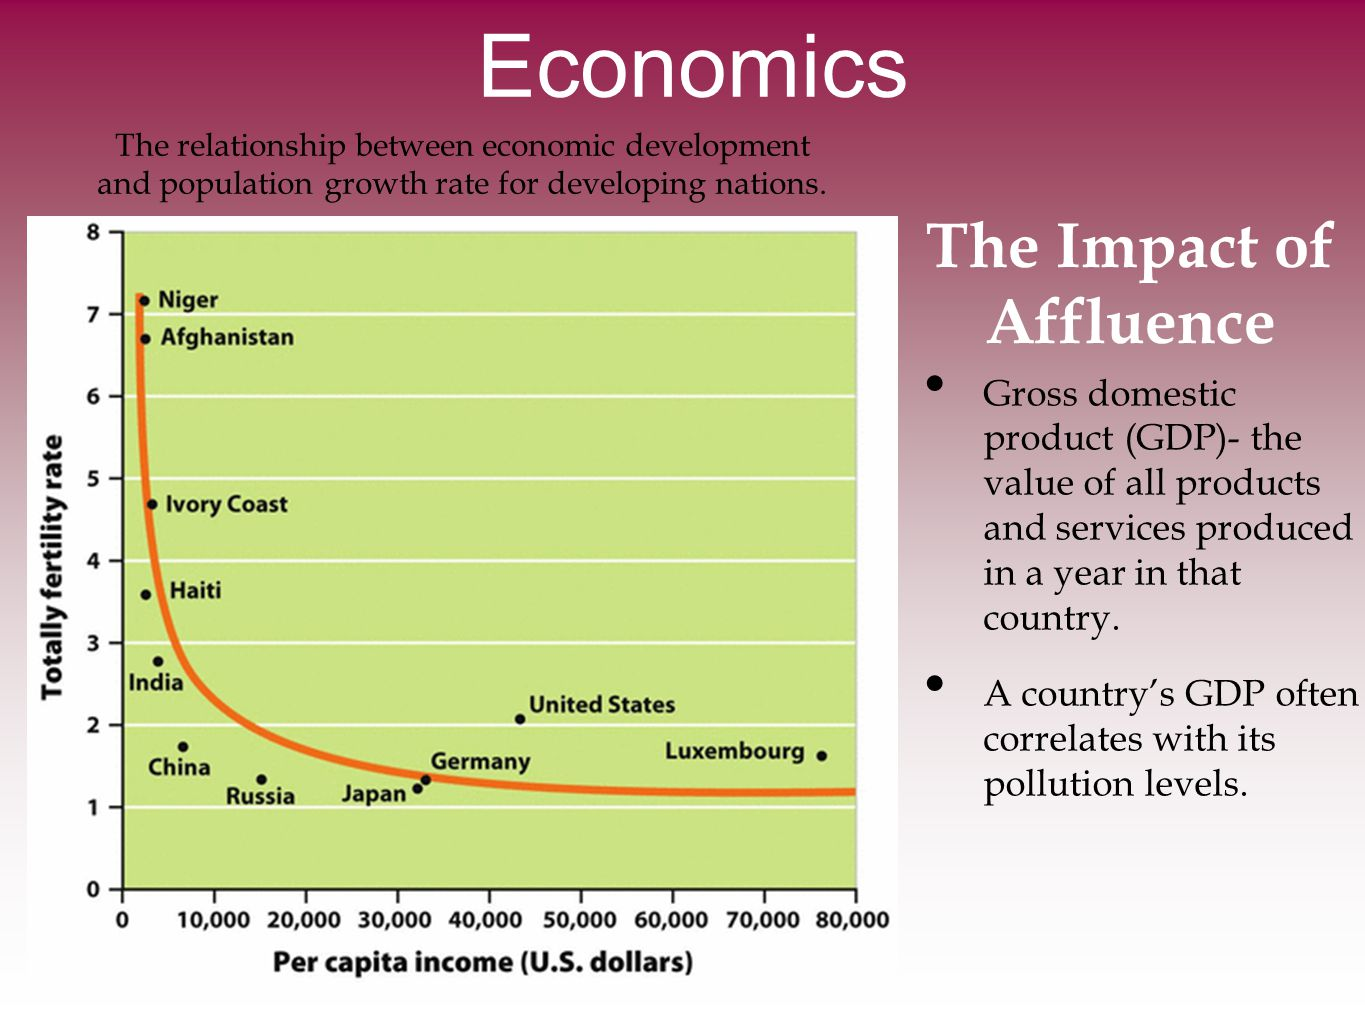 The Impact of Affluence